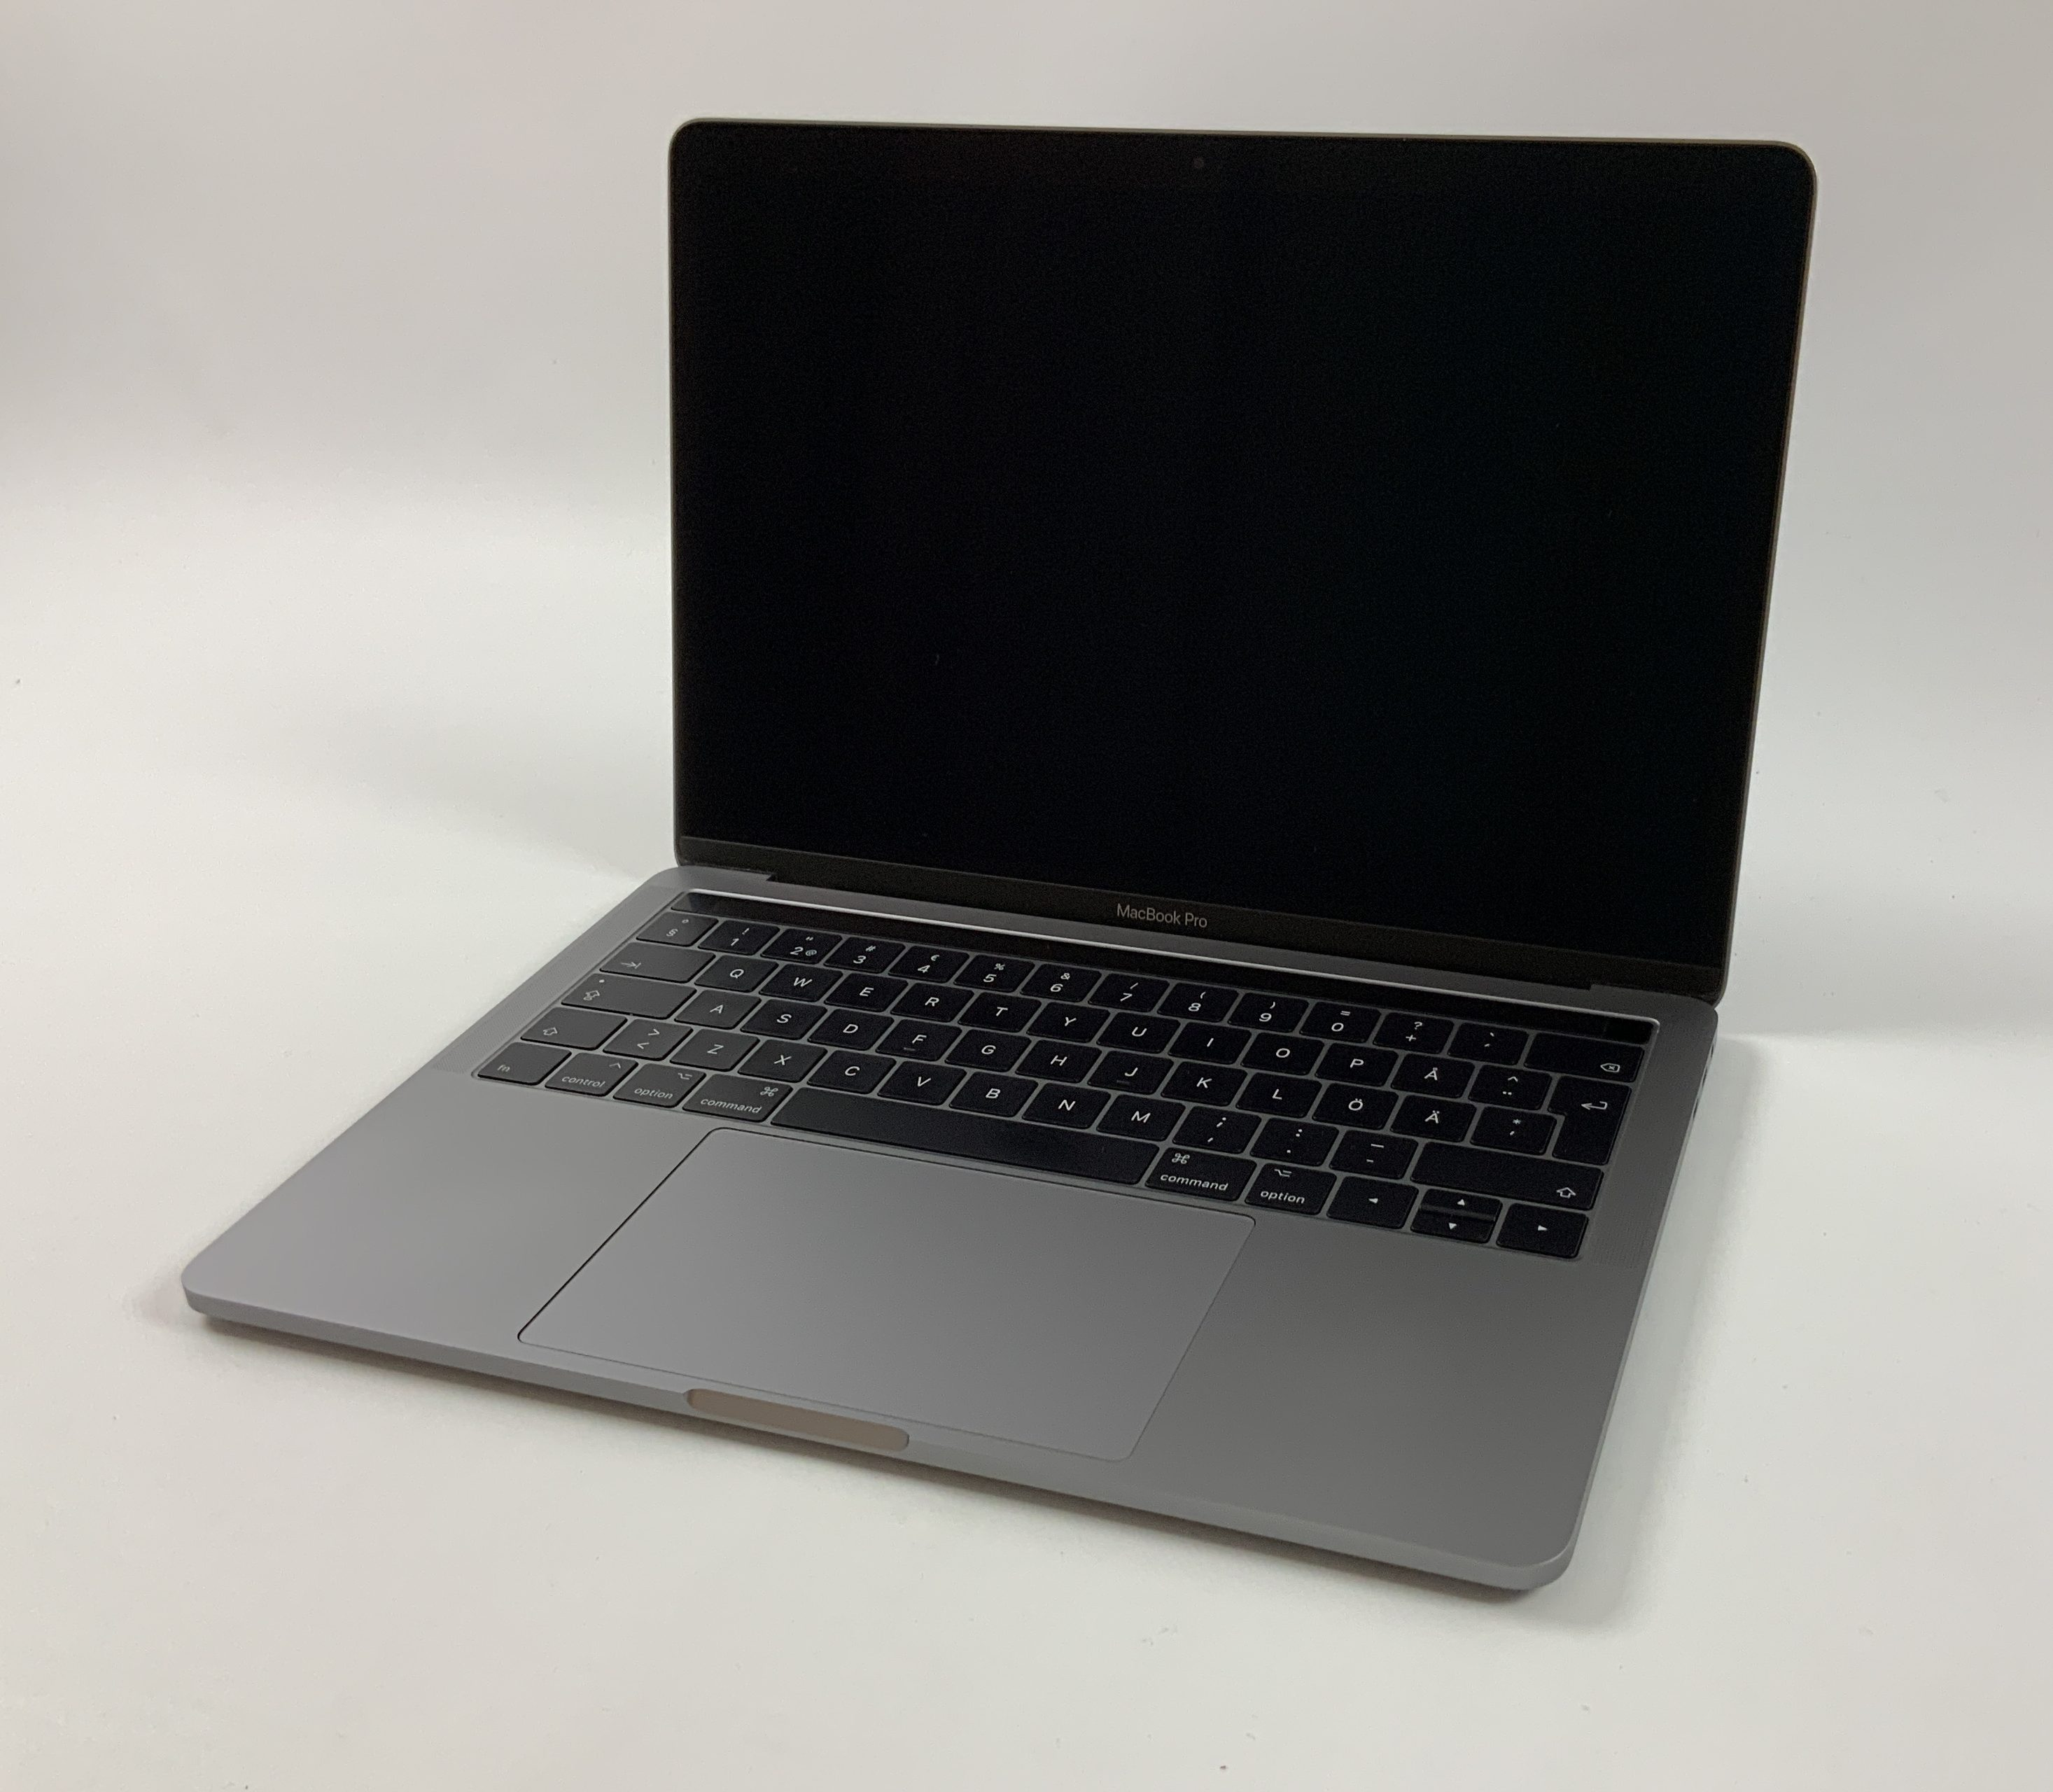 "MacBook Pro 13"" 4TBT Late 2016 (Intel Core i5 2.9 GHz 8 GB RAM 256 GB SSD), Space Gray, Intel Core i5 2.9 GHz, 8 GB RAM, 256 GB SSD, Kuva 1"